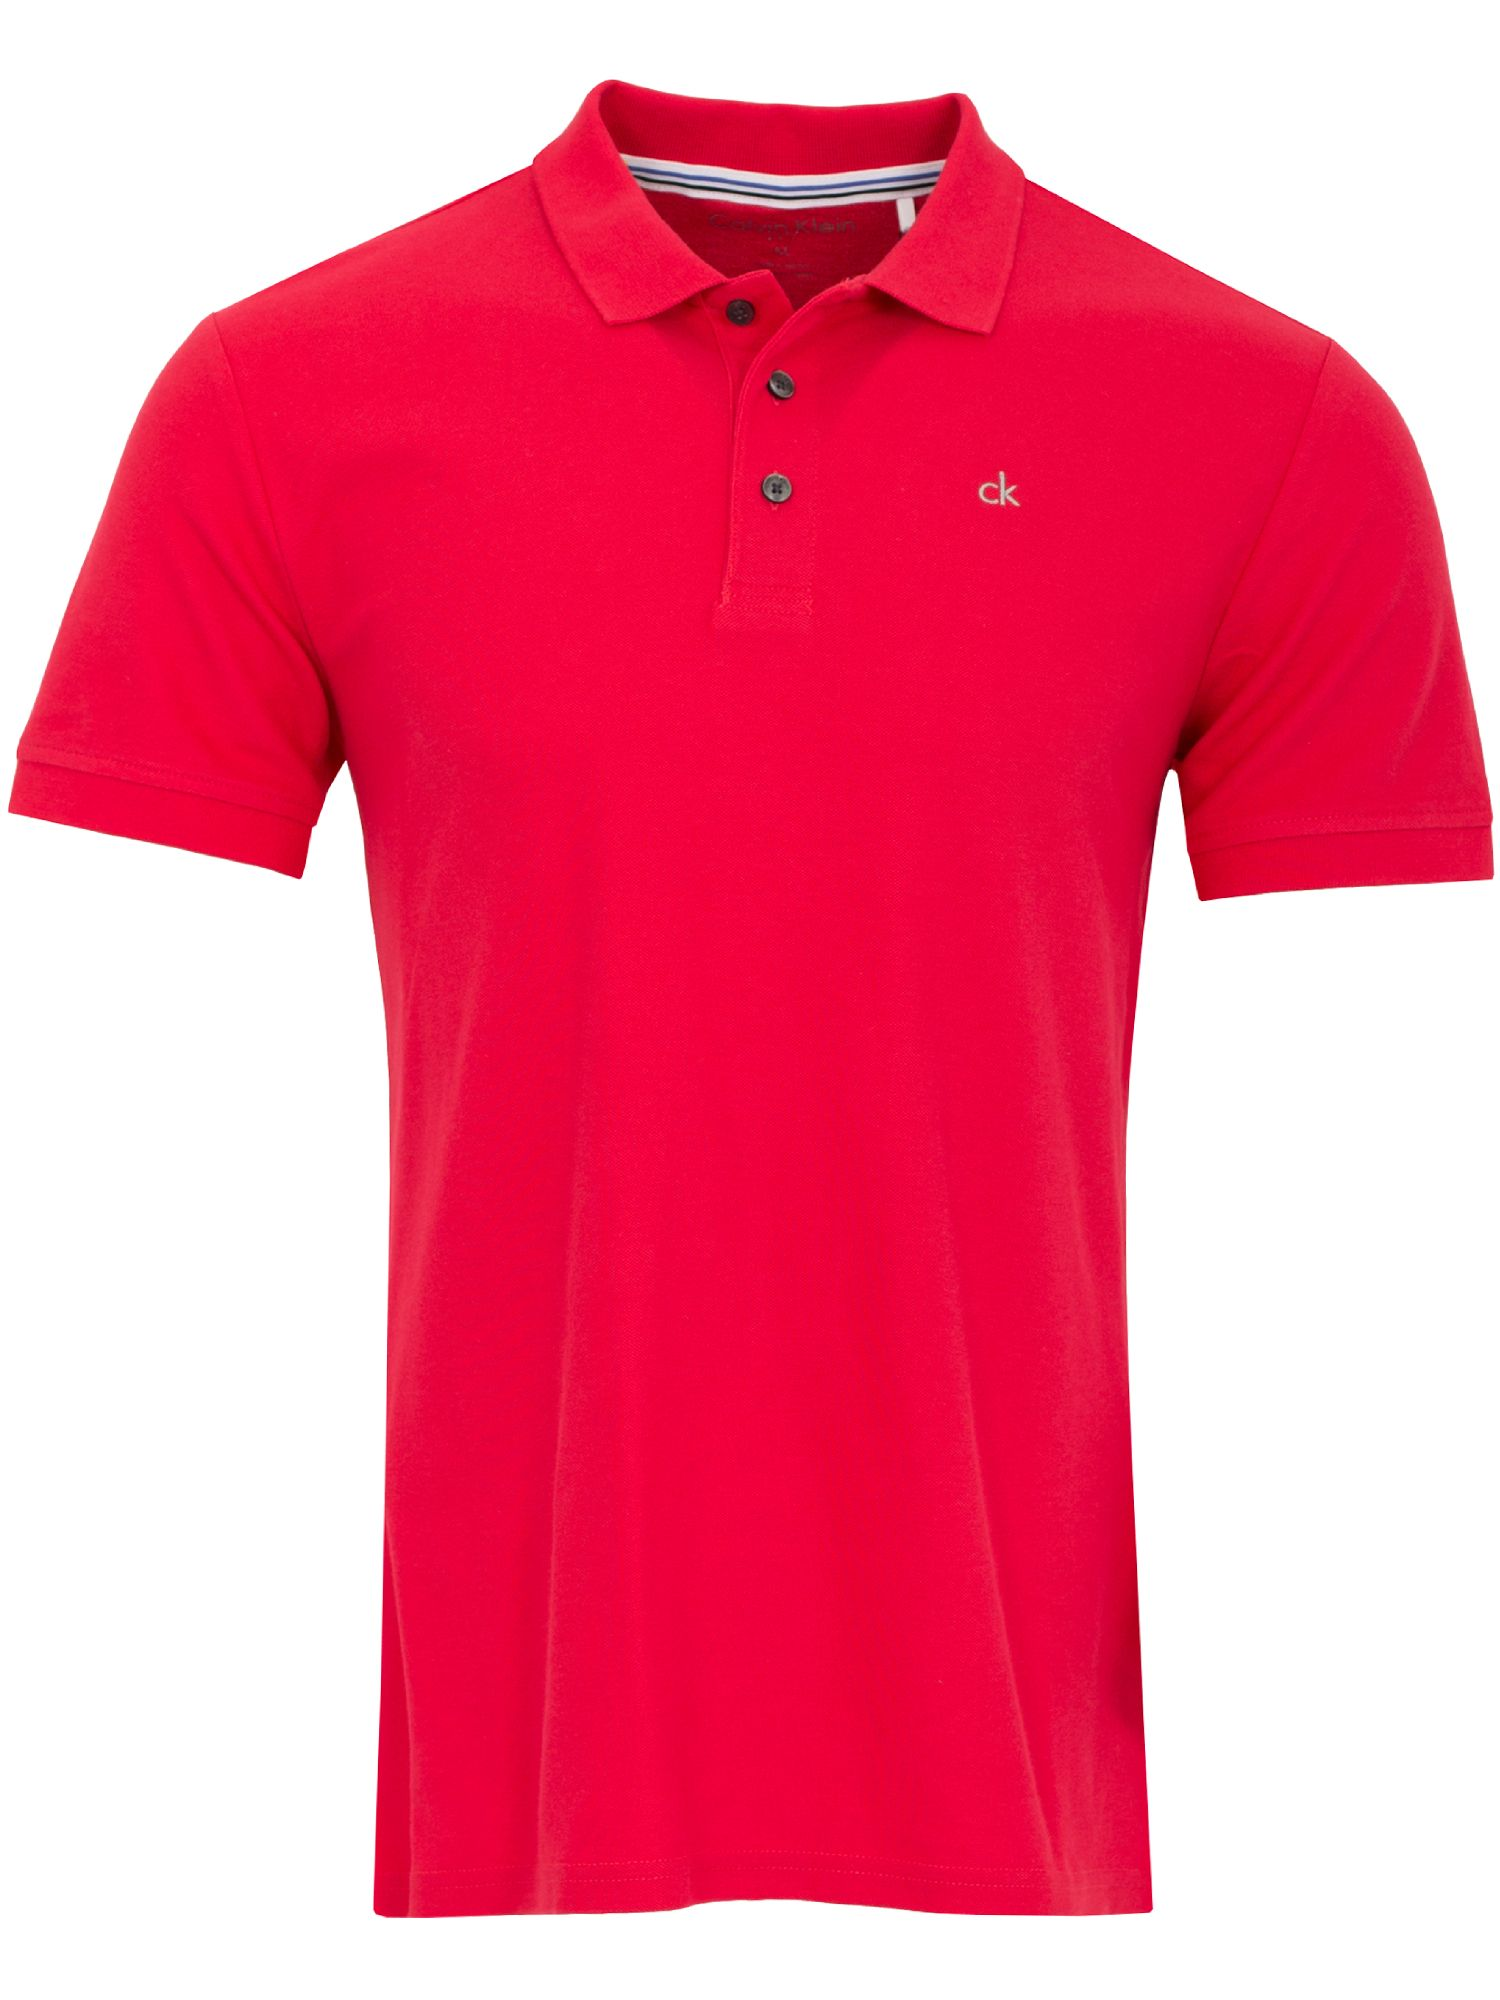 Men's Calvin Klein Golf Midtown Radical Cotton Polo, Red